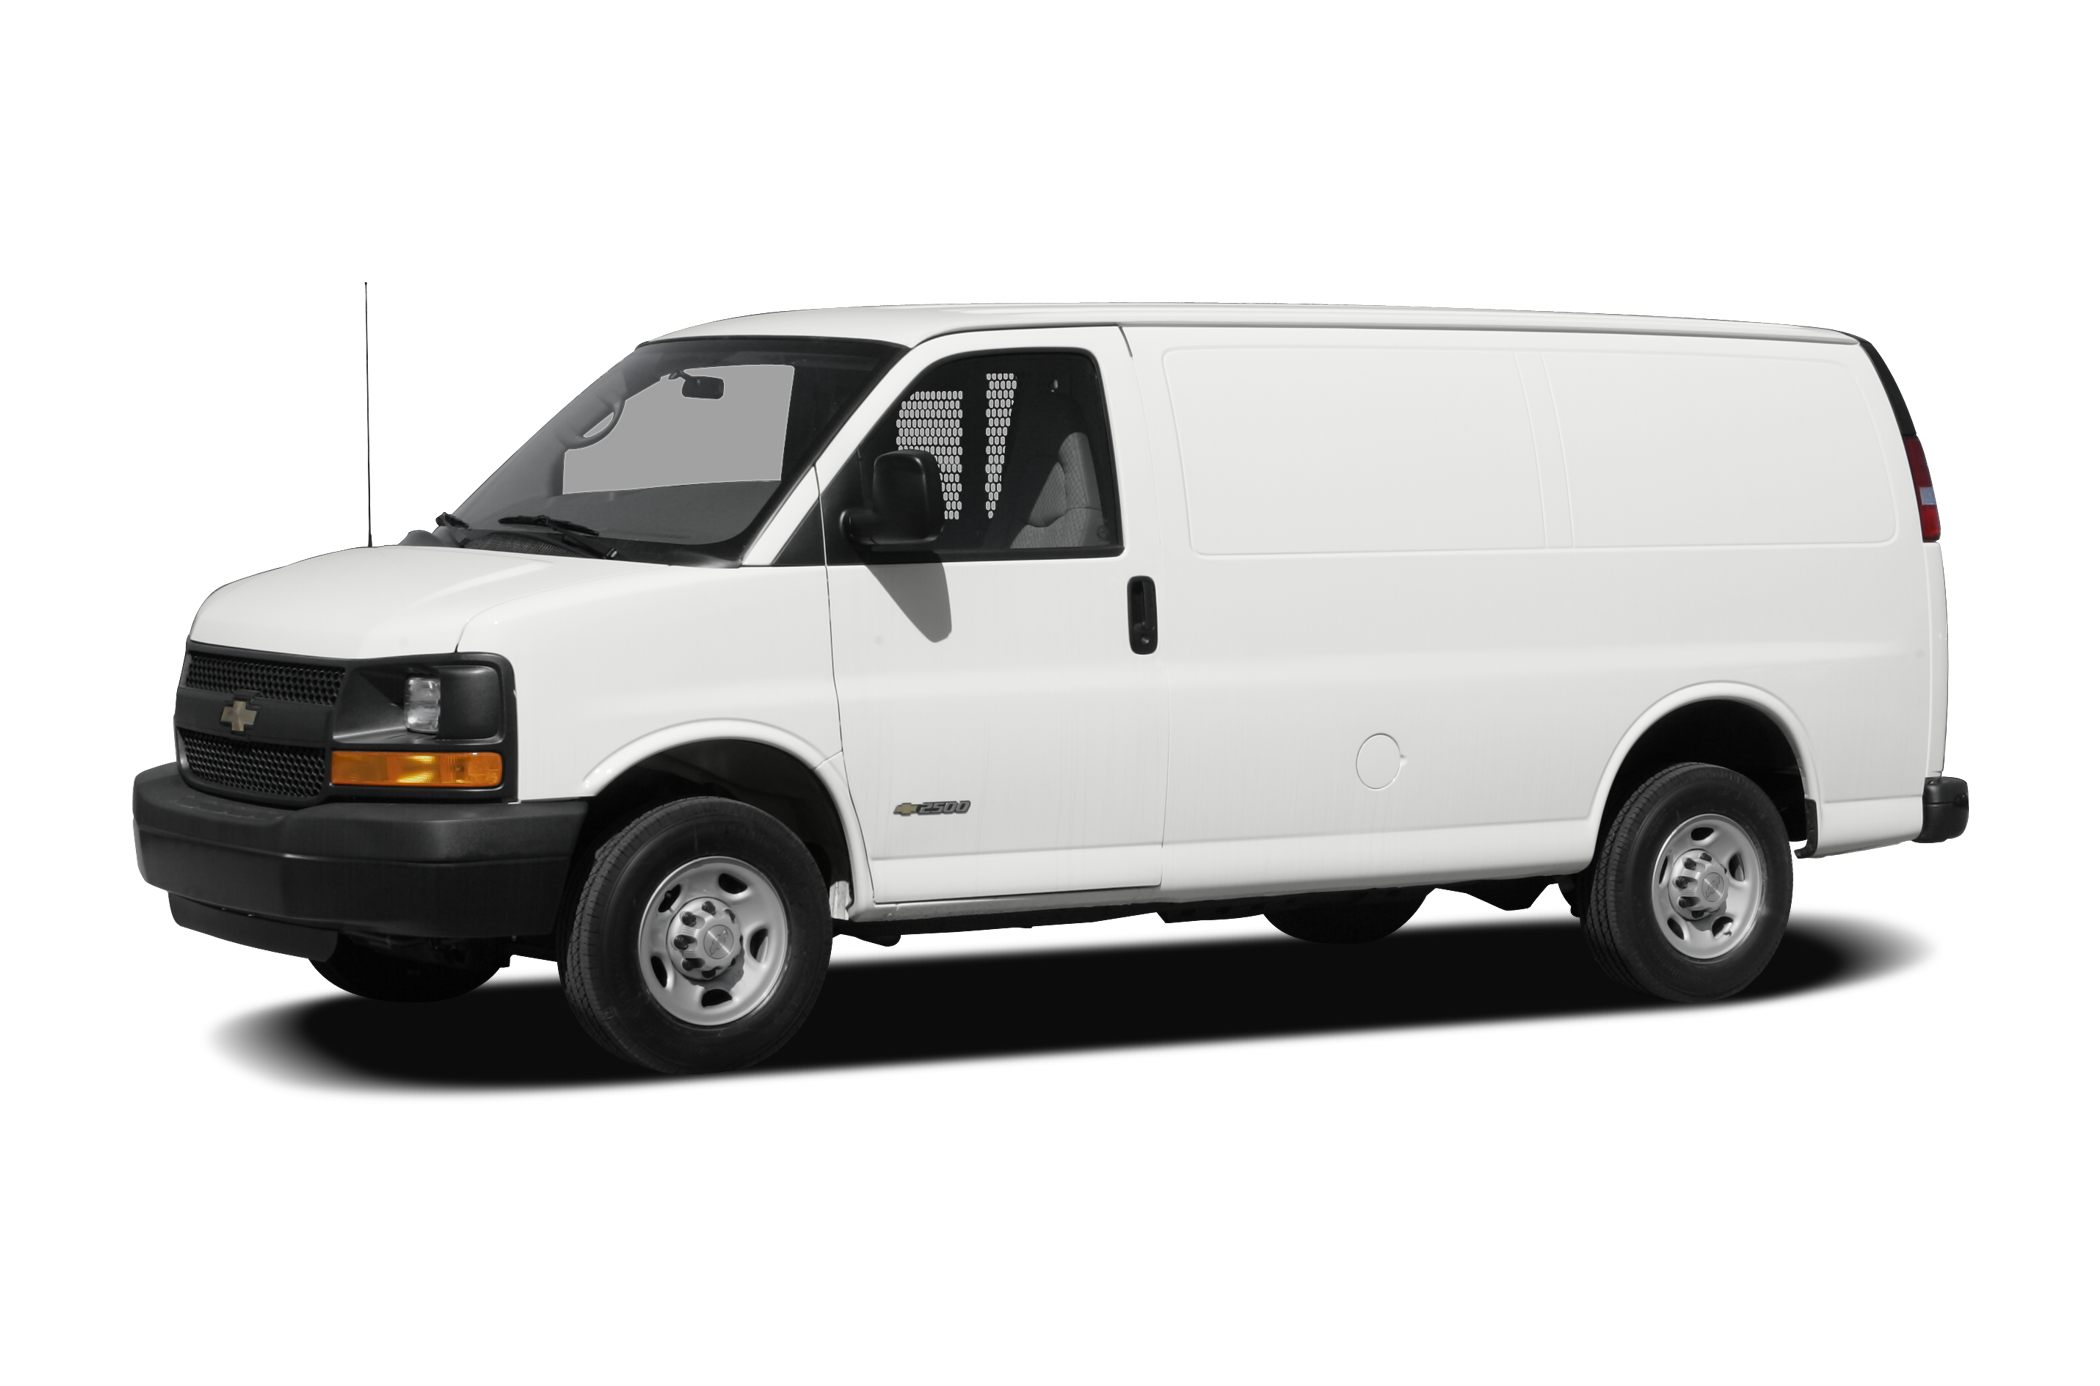 2012 Chevrolet Express 3500